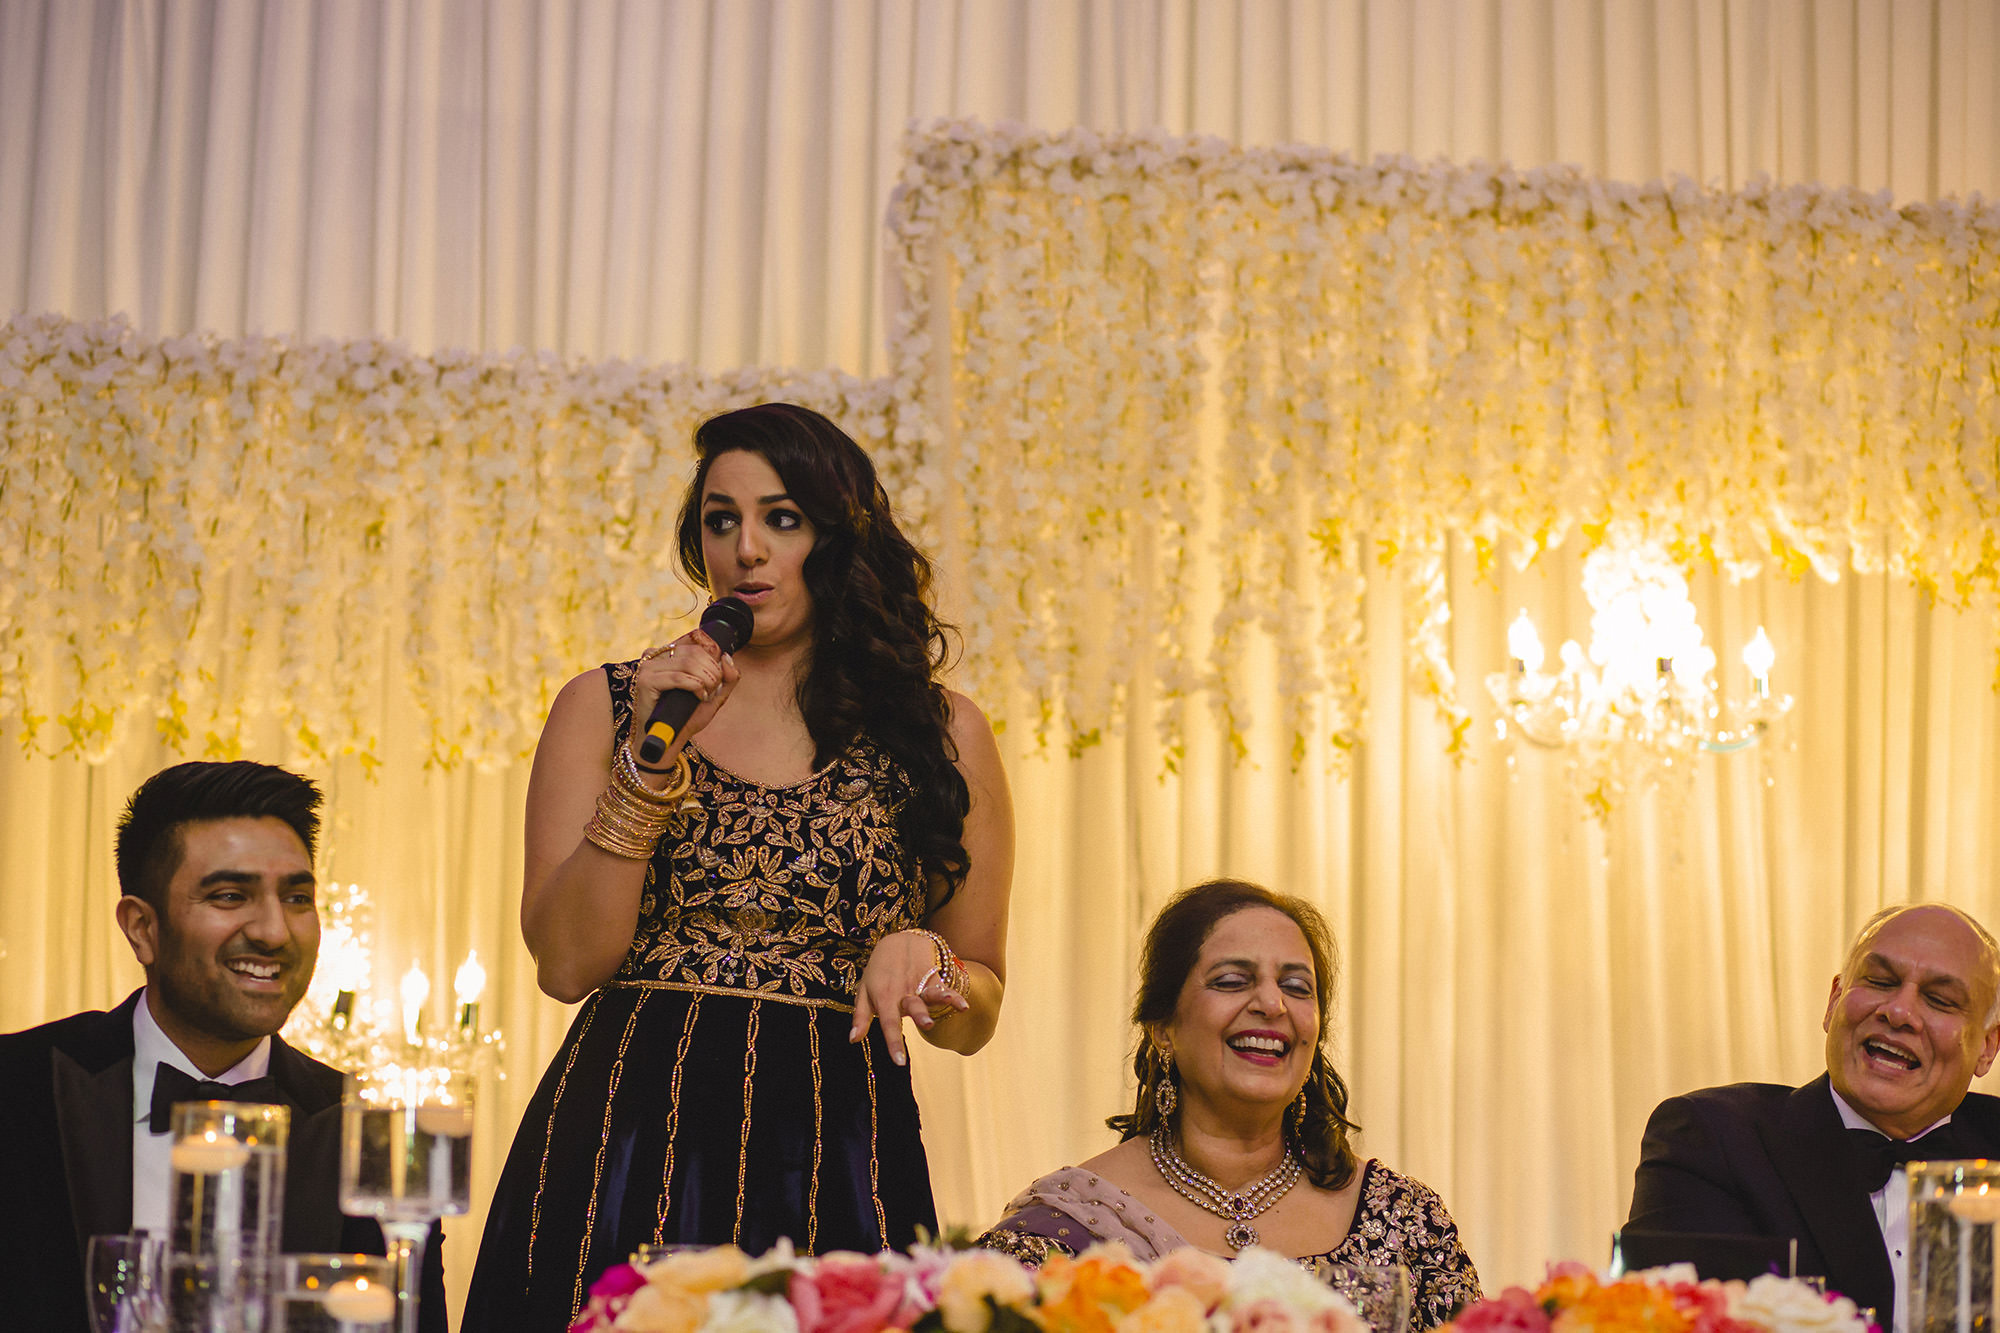 speeches during the wedding reception